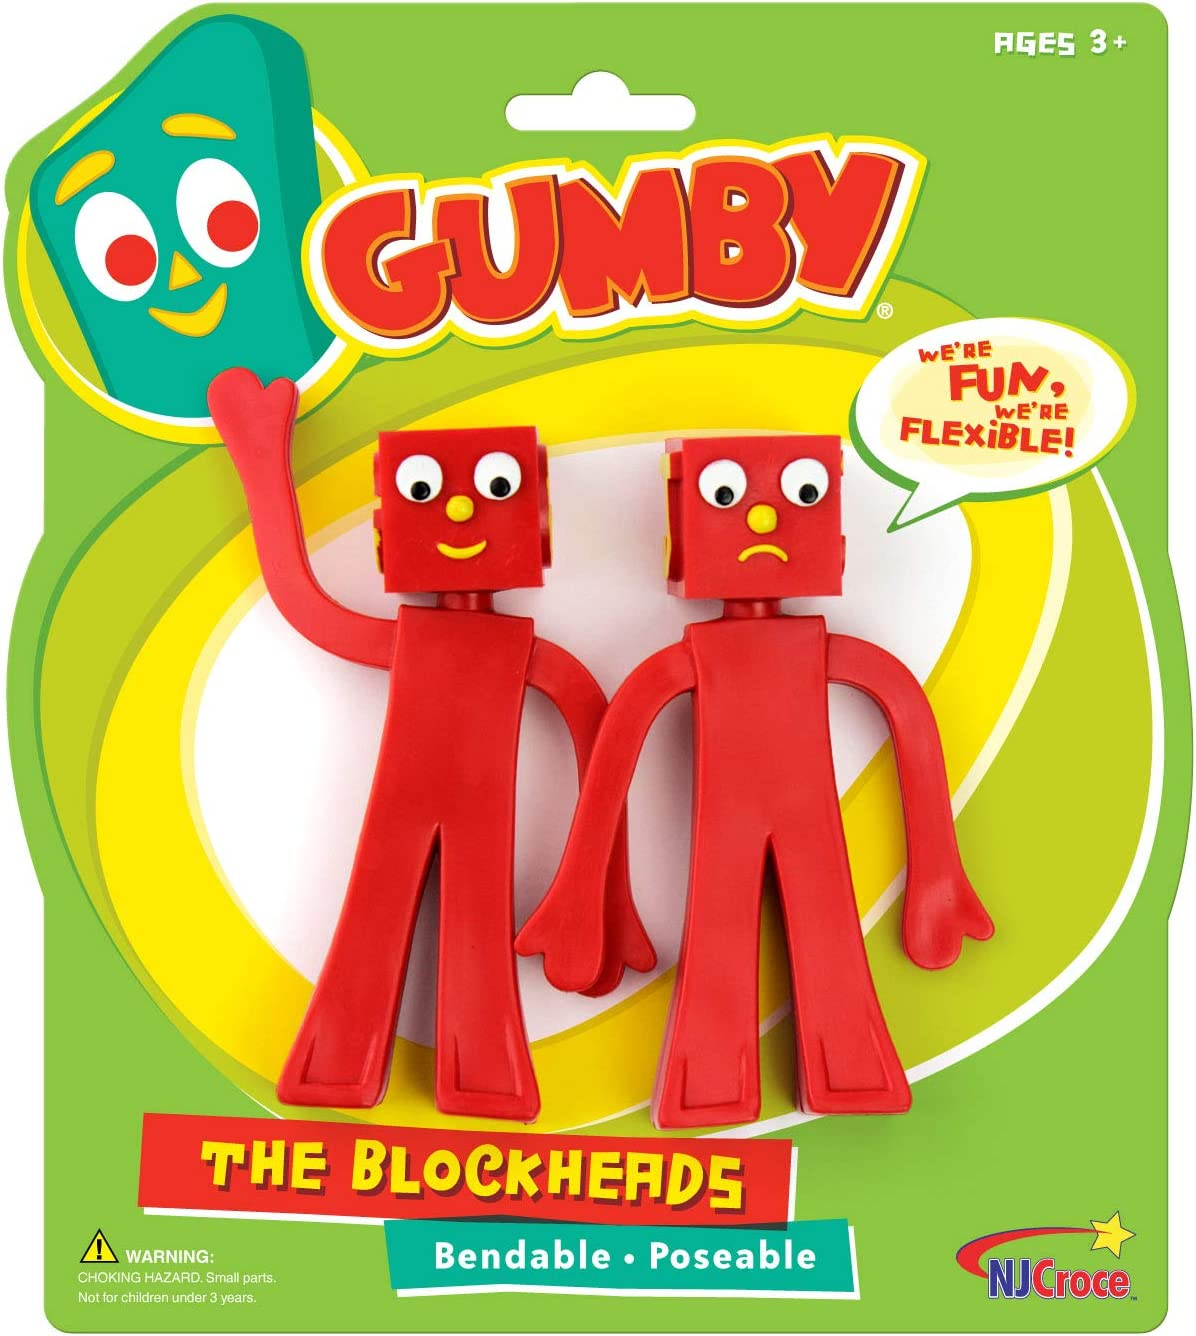 Amazon.com: NJ Croce Gumby Blockheads G & J Bendable Figure Pair ...